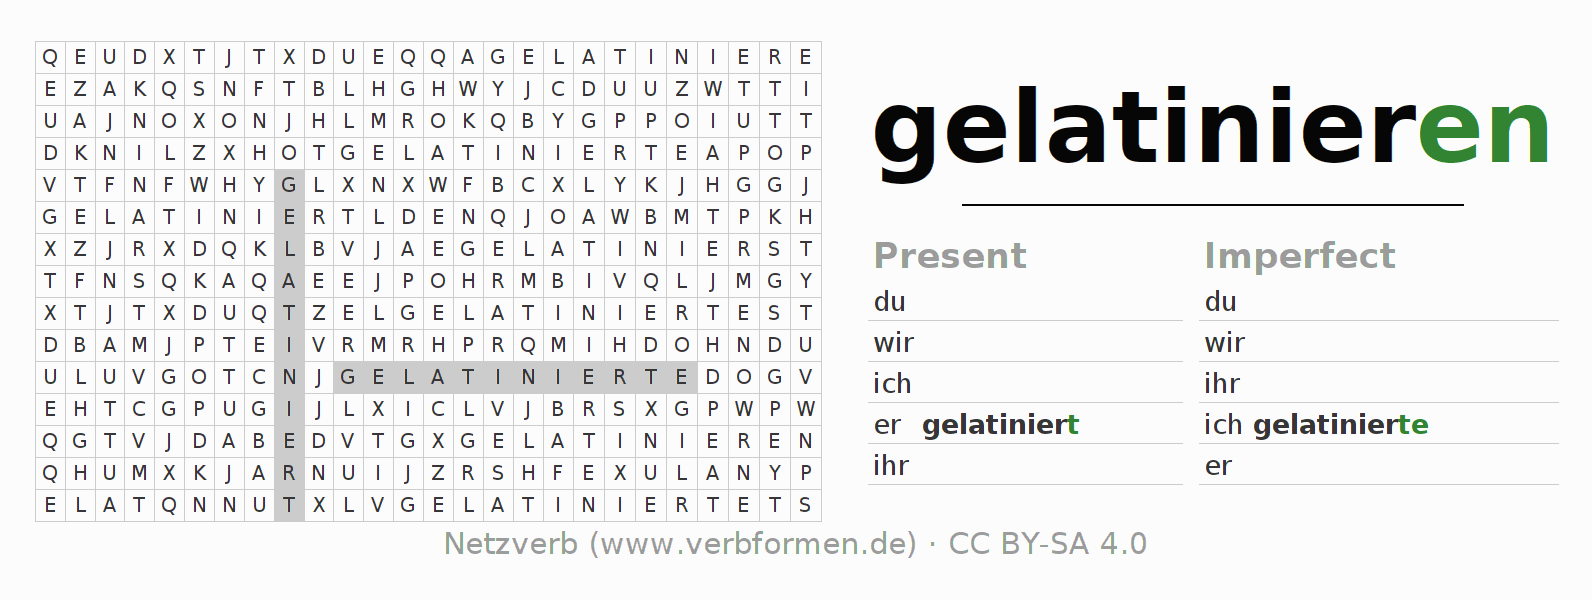 Word search puzzle for the conjugation of the verb gelatinieren (hat)